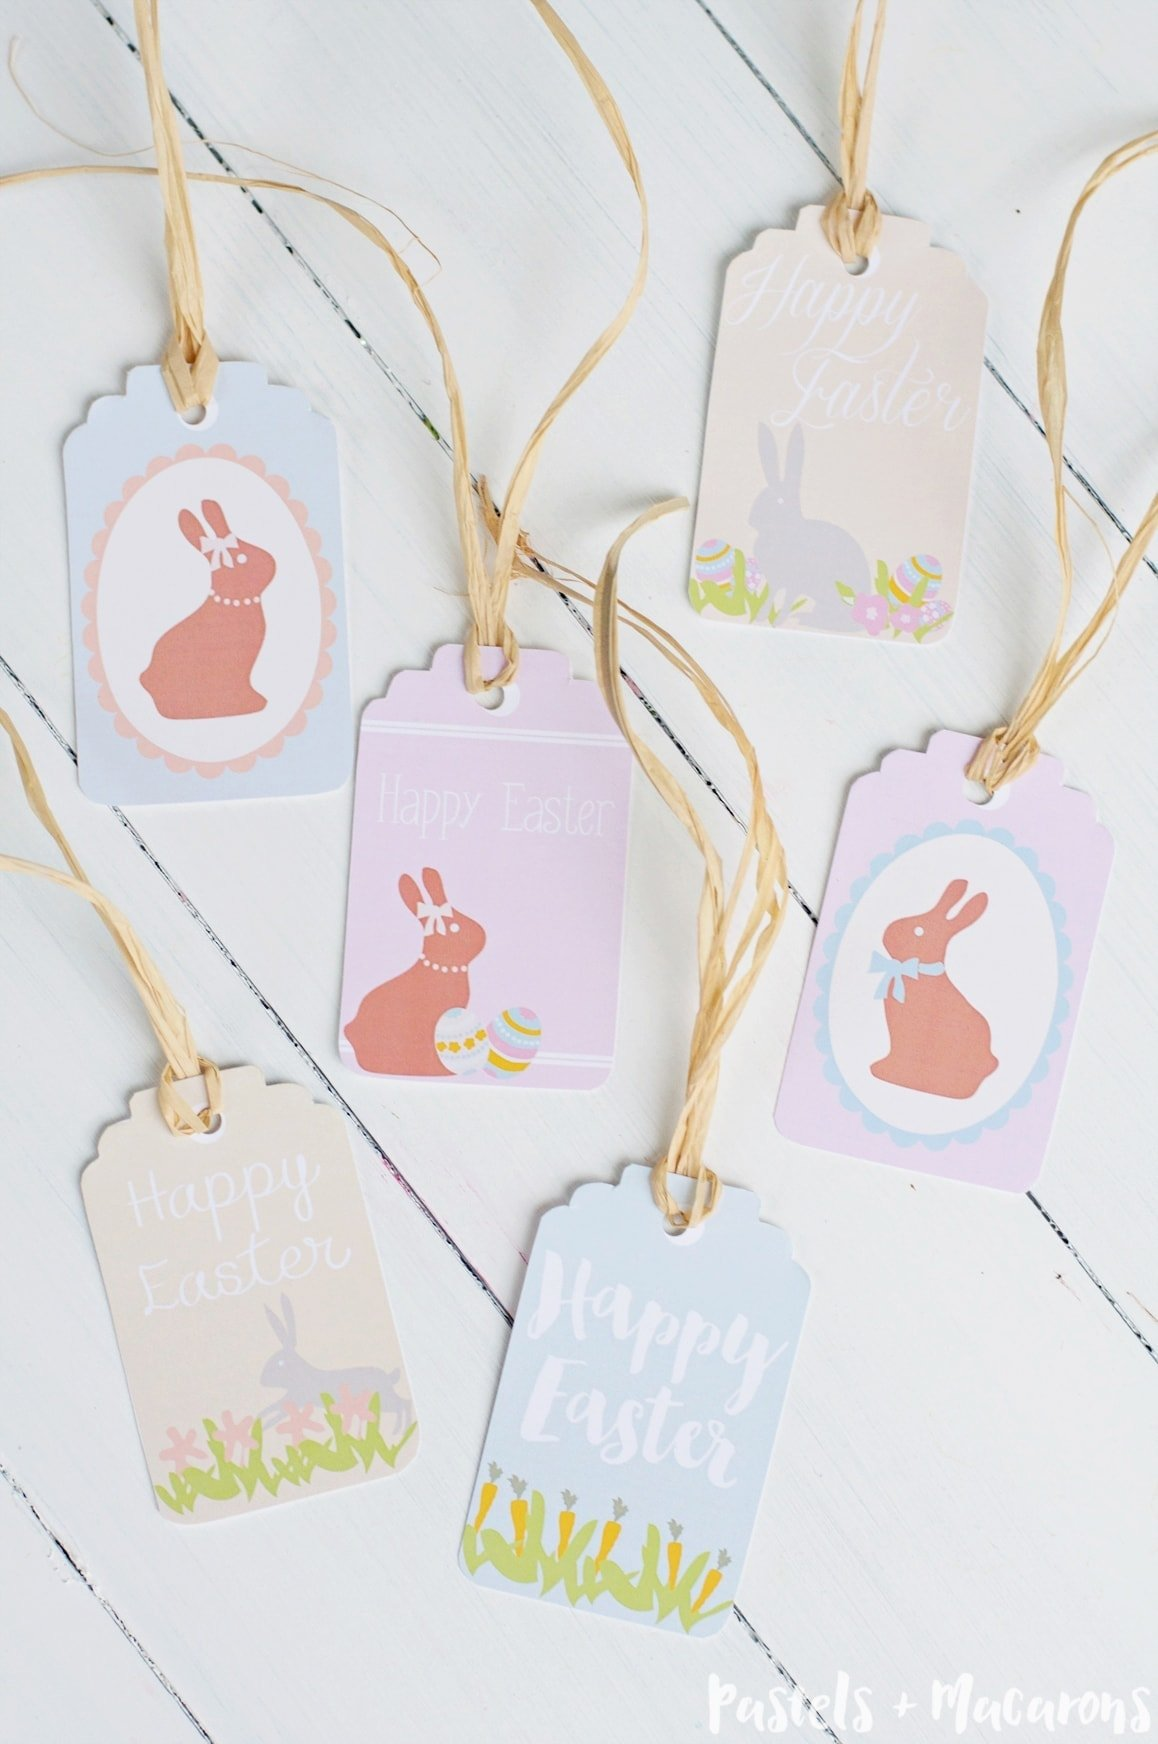 This is an image of Slobbery Printable Easter Tag